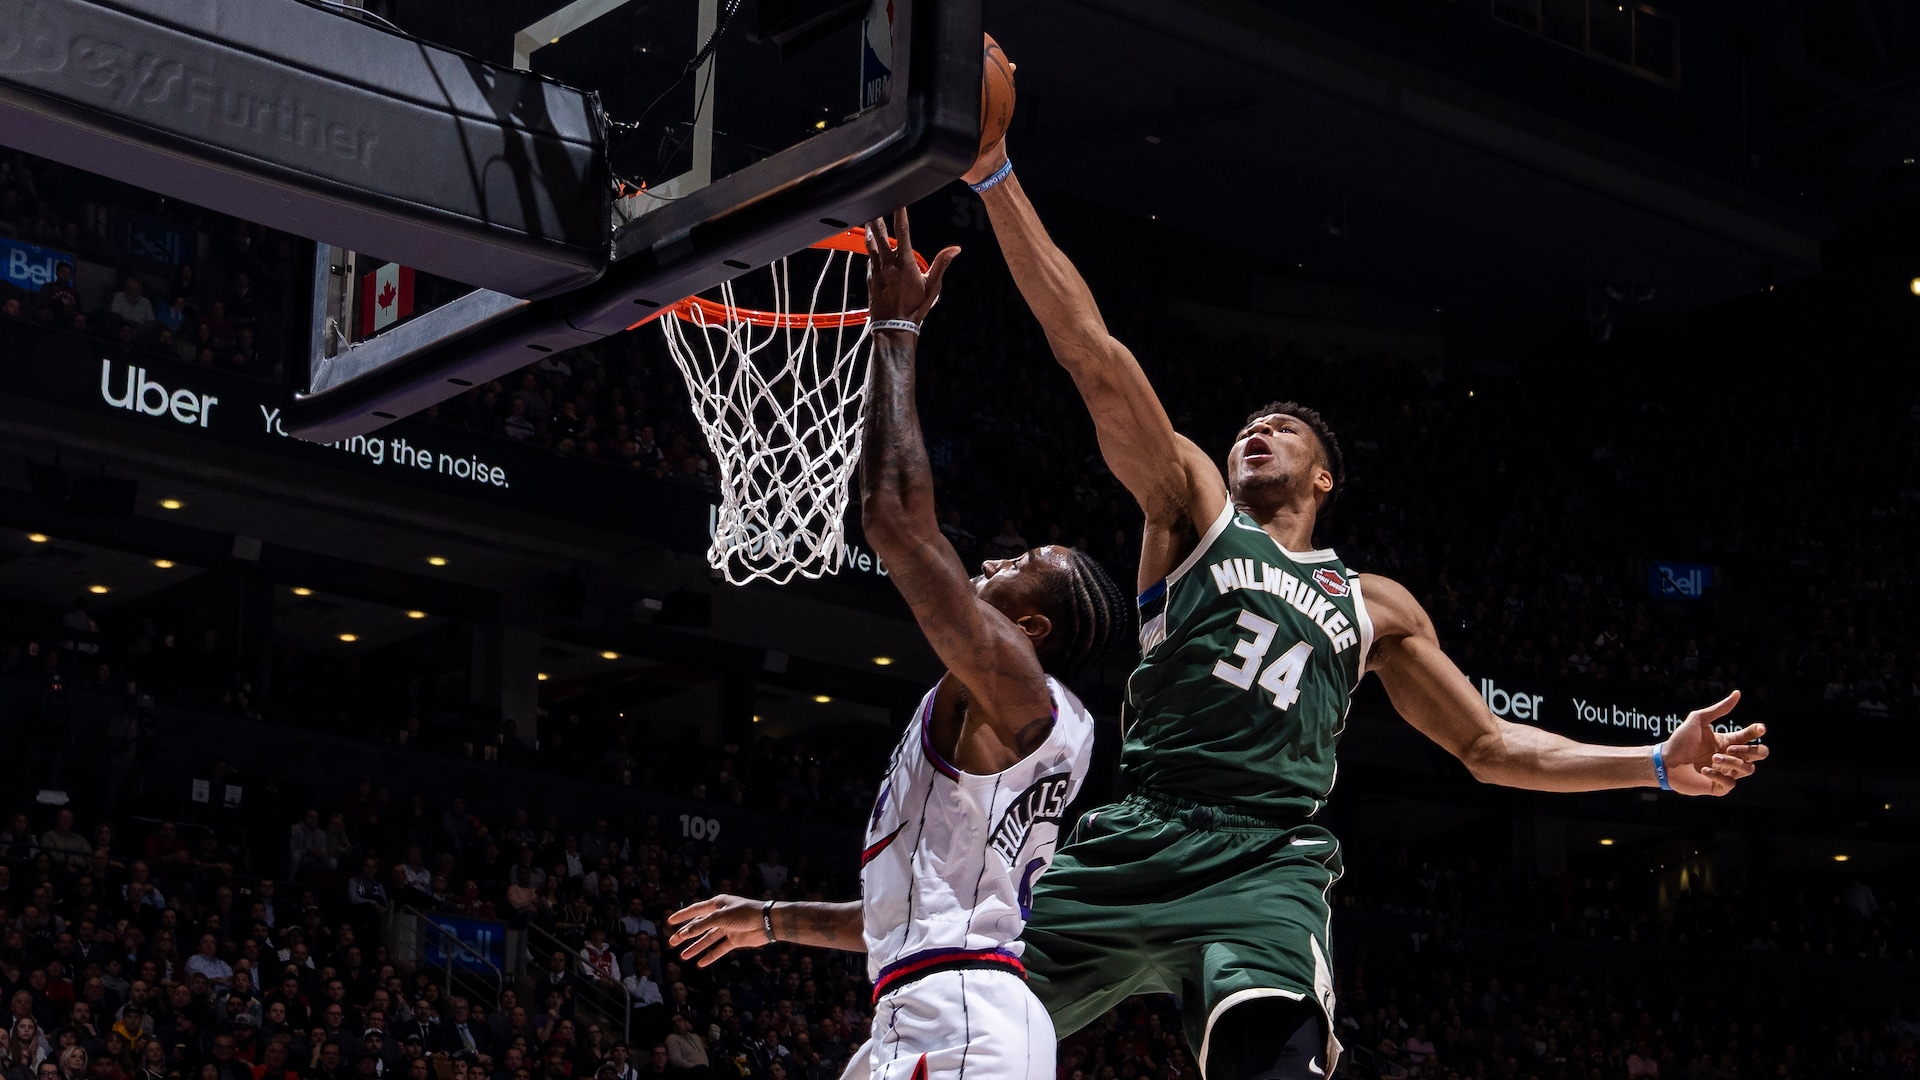 Milwaukee's Giannis Antetokounmpo wins 2019-20 Kia NBA Defensive Player of the Year Award